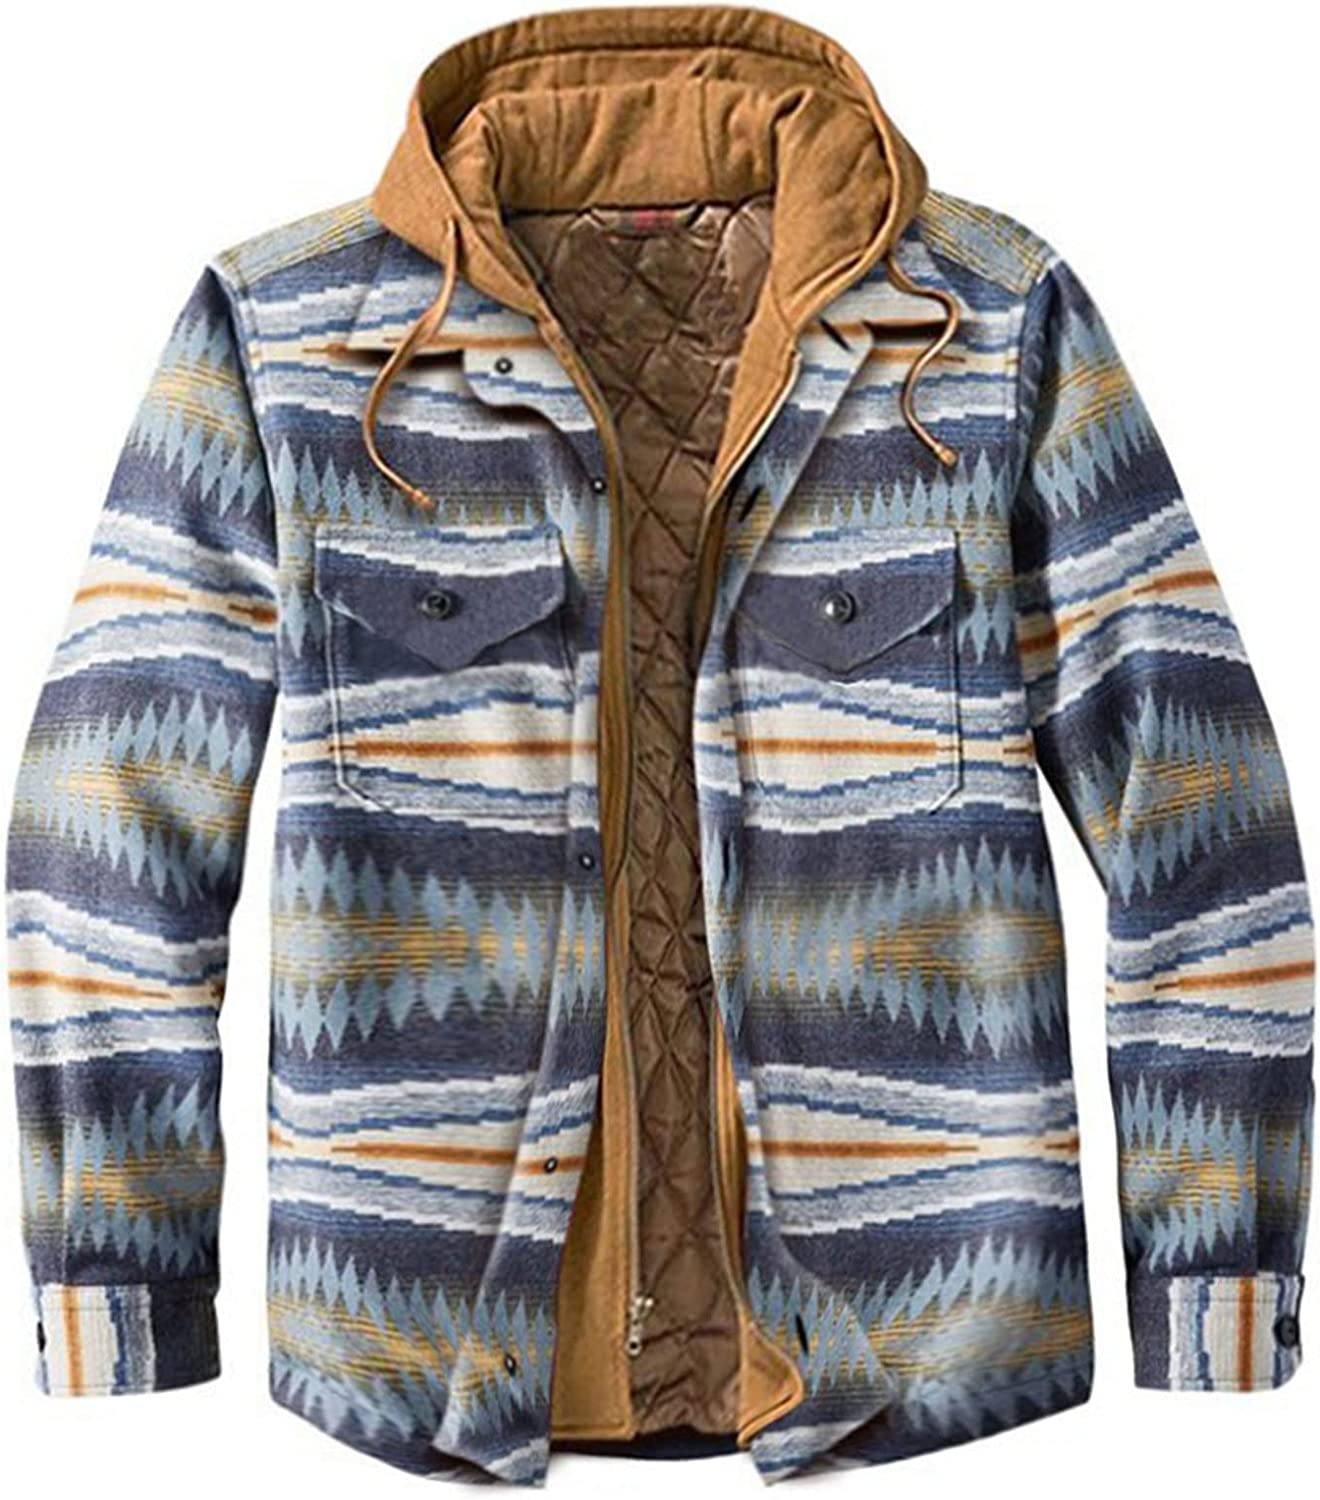 CHENGSE Winter Coats Jackets for Men Big and Tall Sherpa Fleece Lined Hooded Shirt Jacket Maplewood Flannel Shirt Jackets